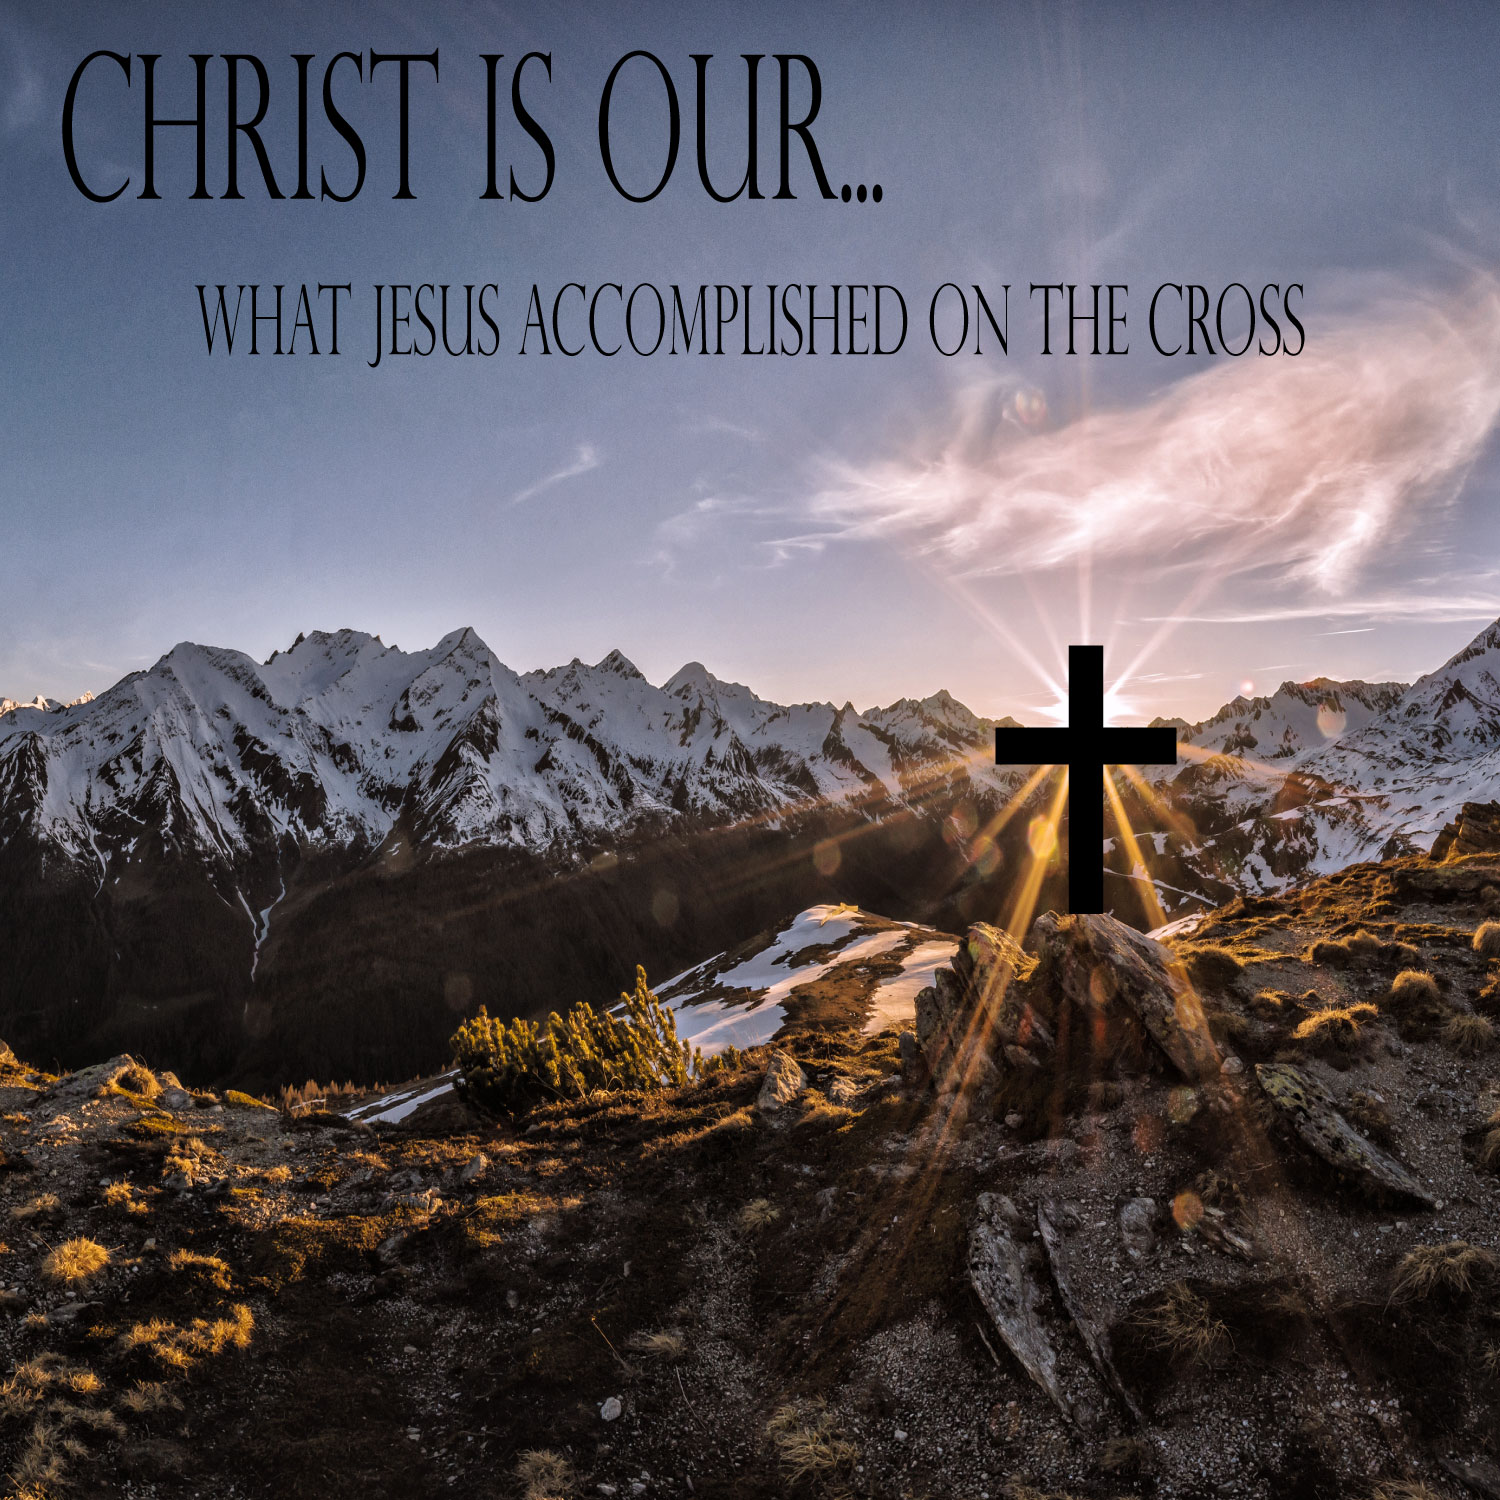 Christ is our Redemption